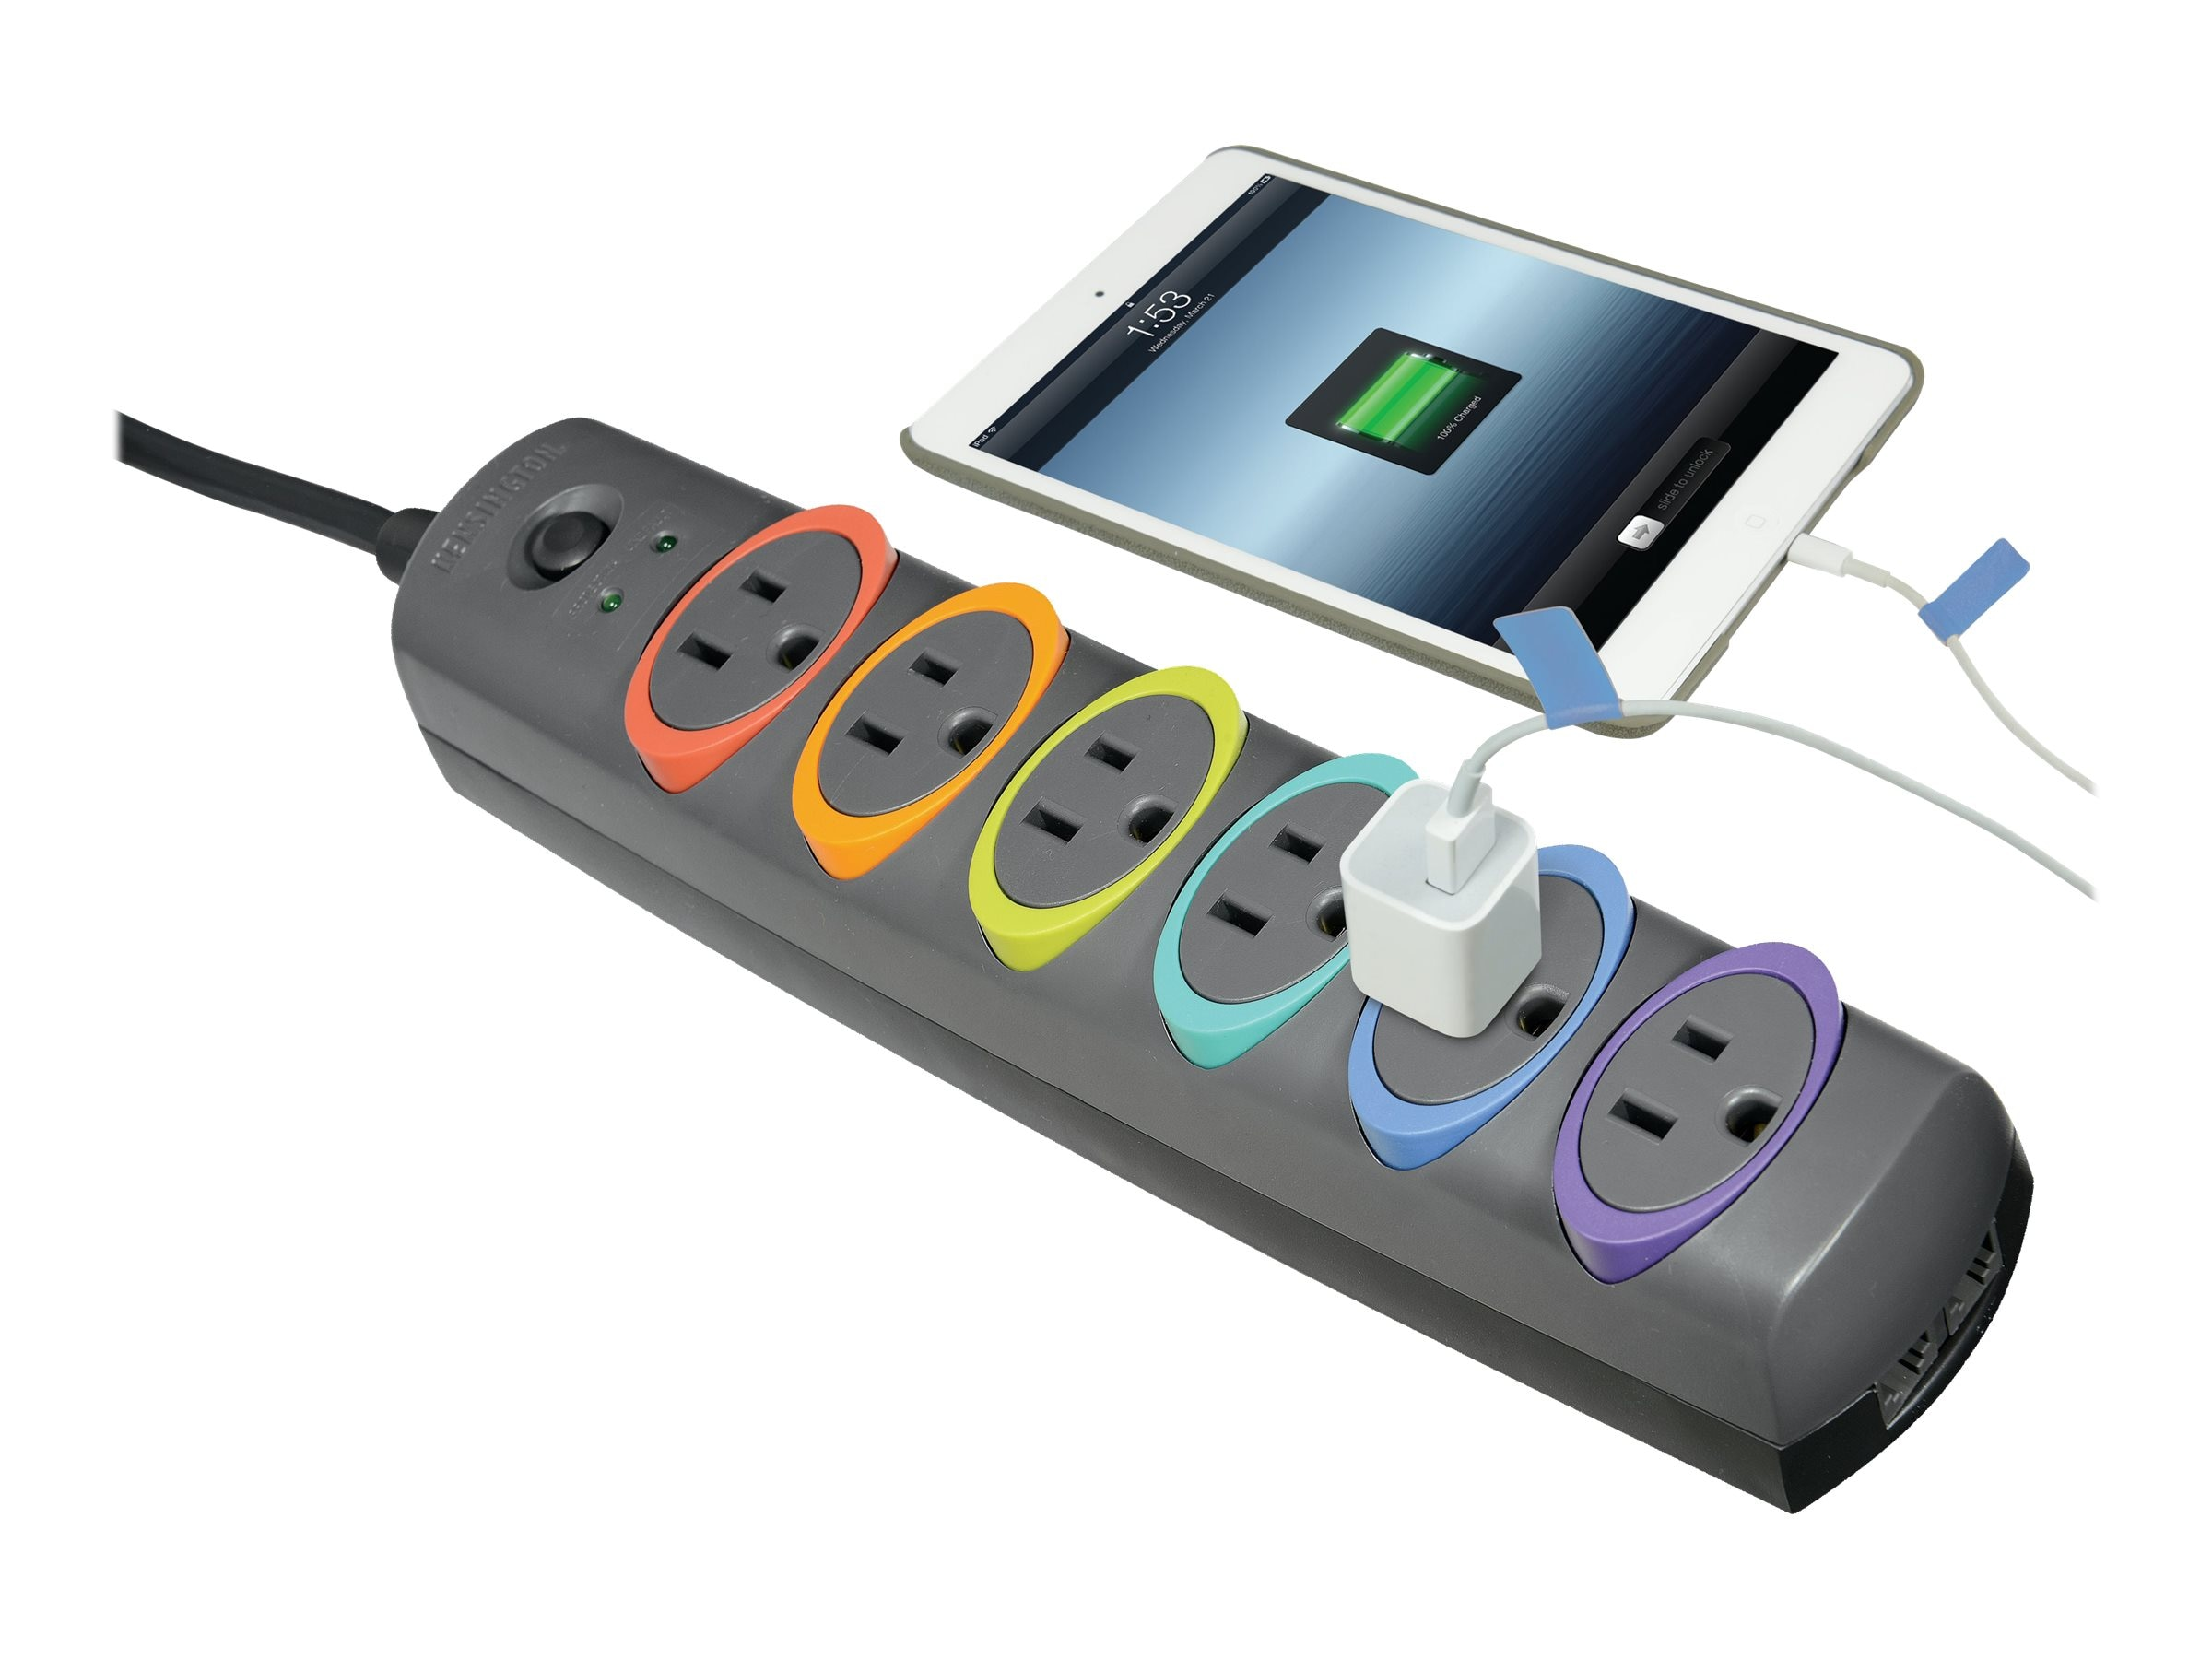 Kensington SmartSockets Standard Surge Protector, 945 Joules, (6) Outlets, 7ft Cord, Phone Line Protection, K62147NA